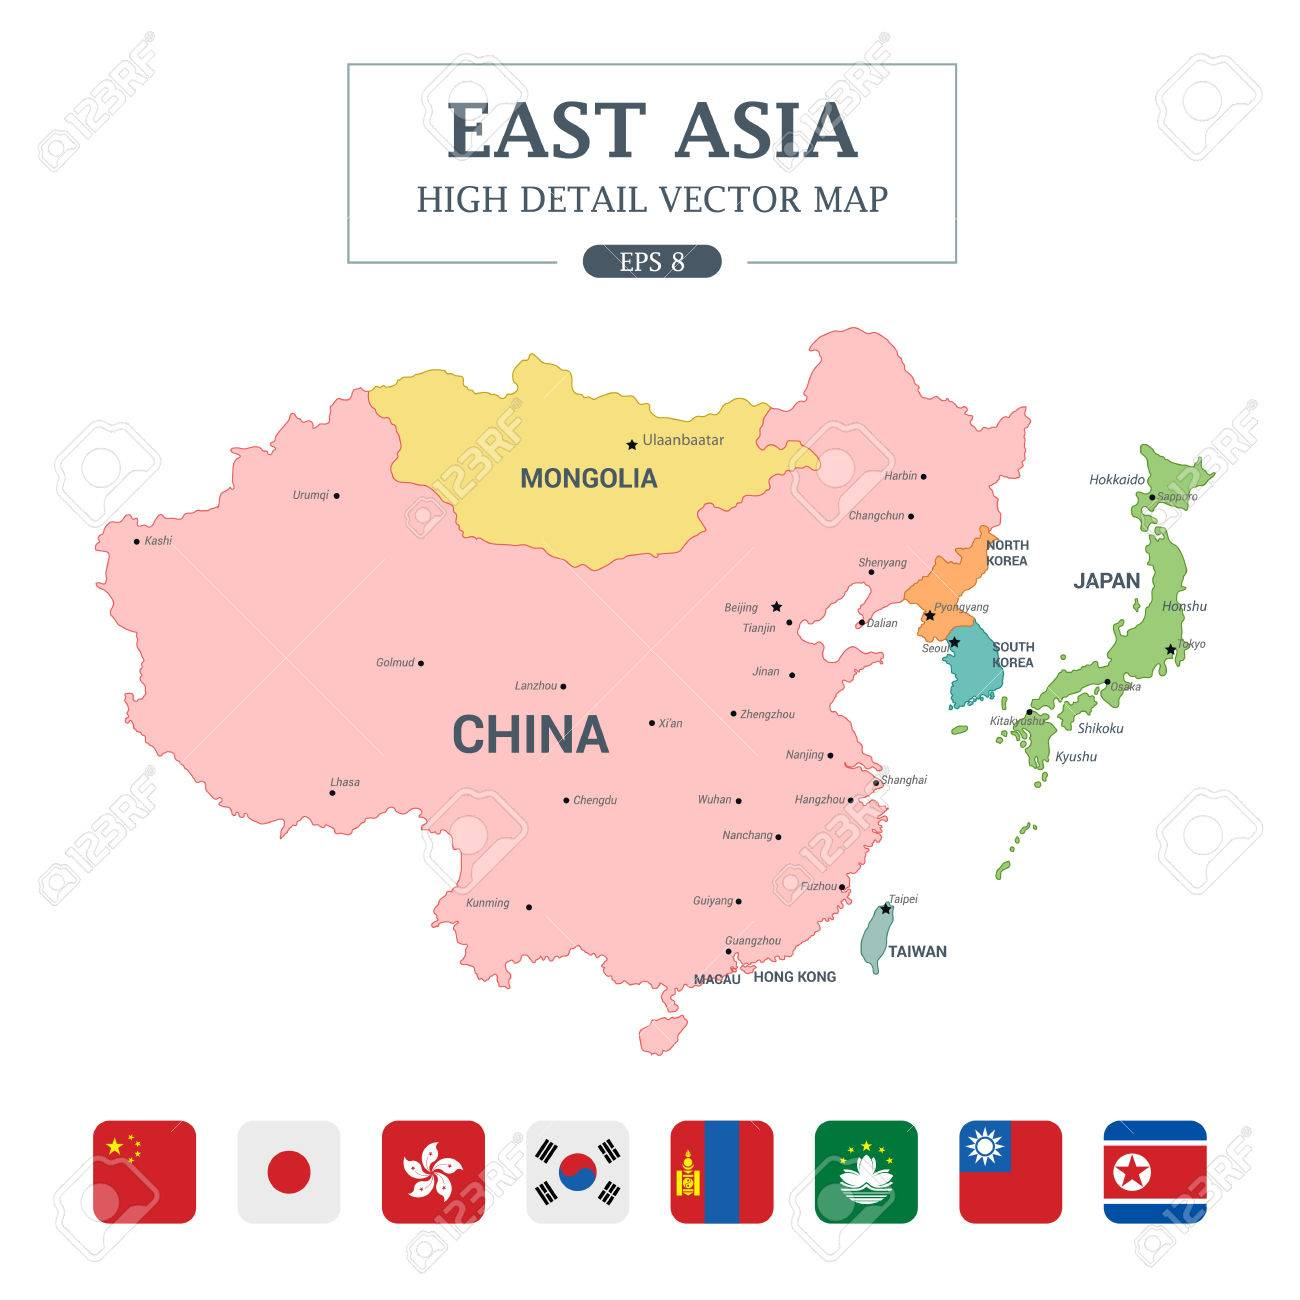 east asia map full color high detail separated all countries vector illustration stock vector 78780074